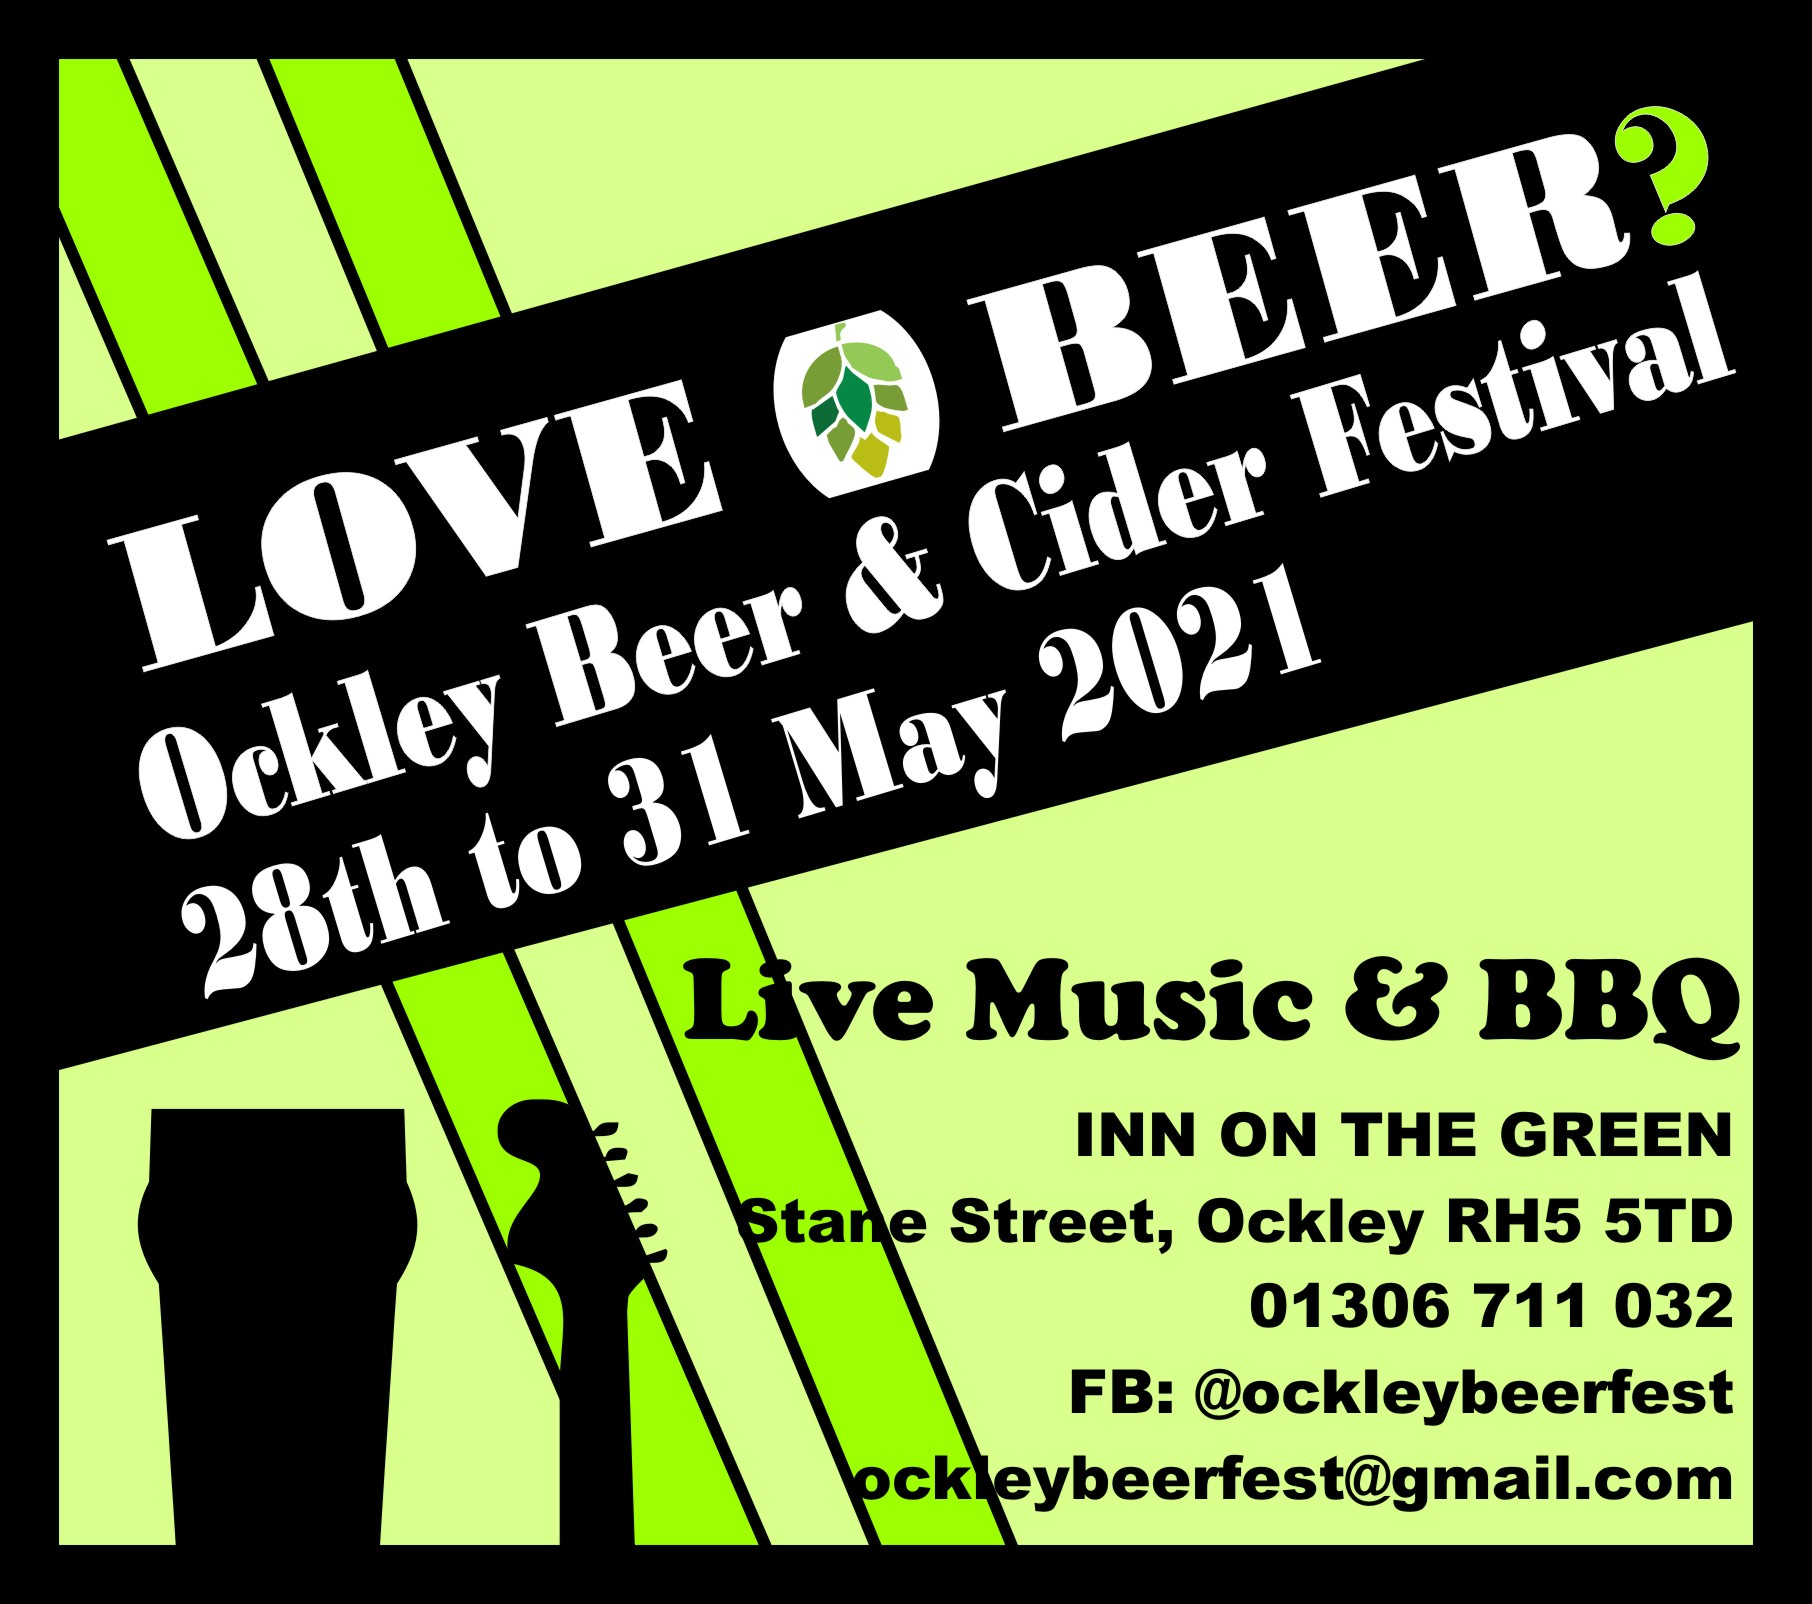 Beer and Cider Festival 28th to 31st May 2021